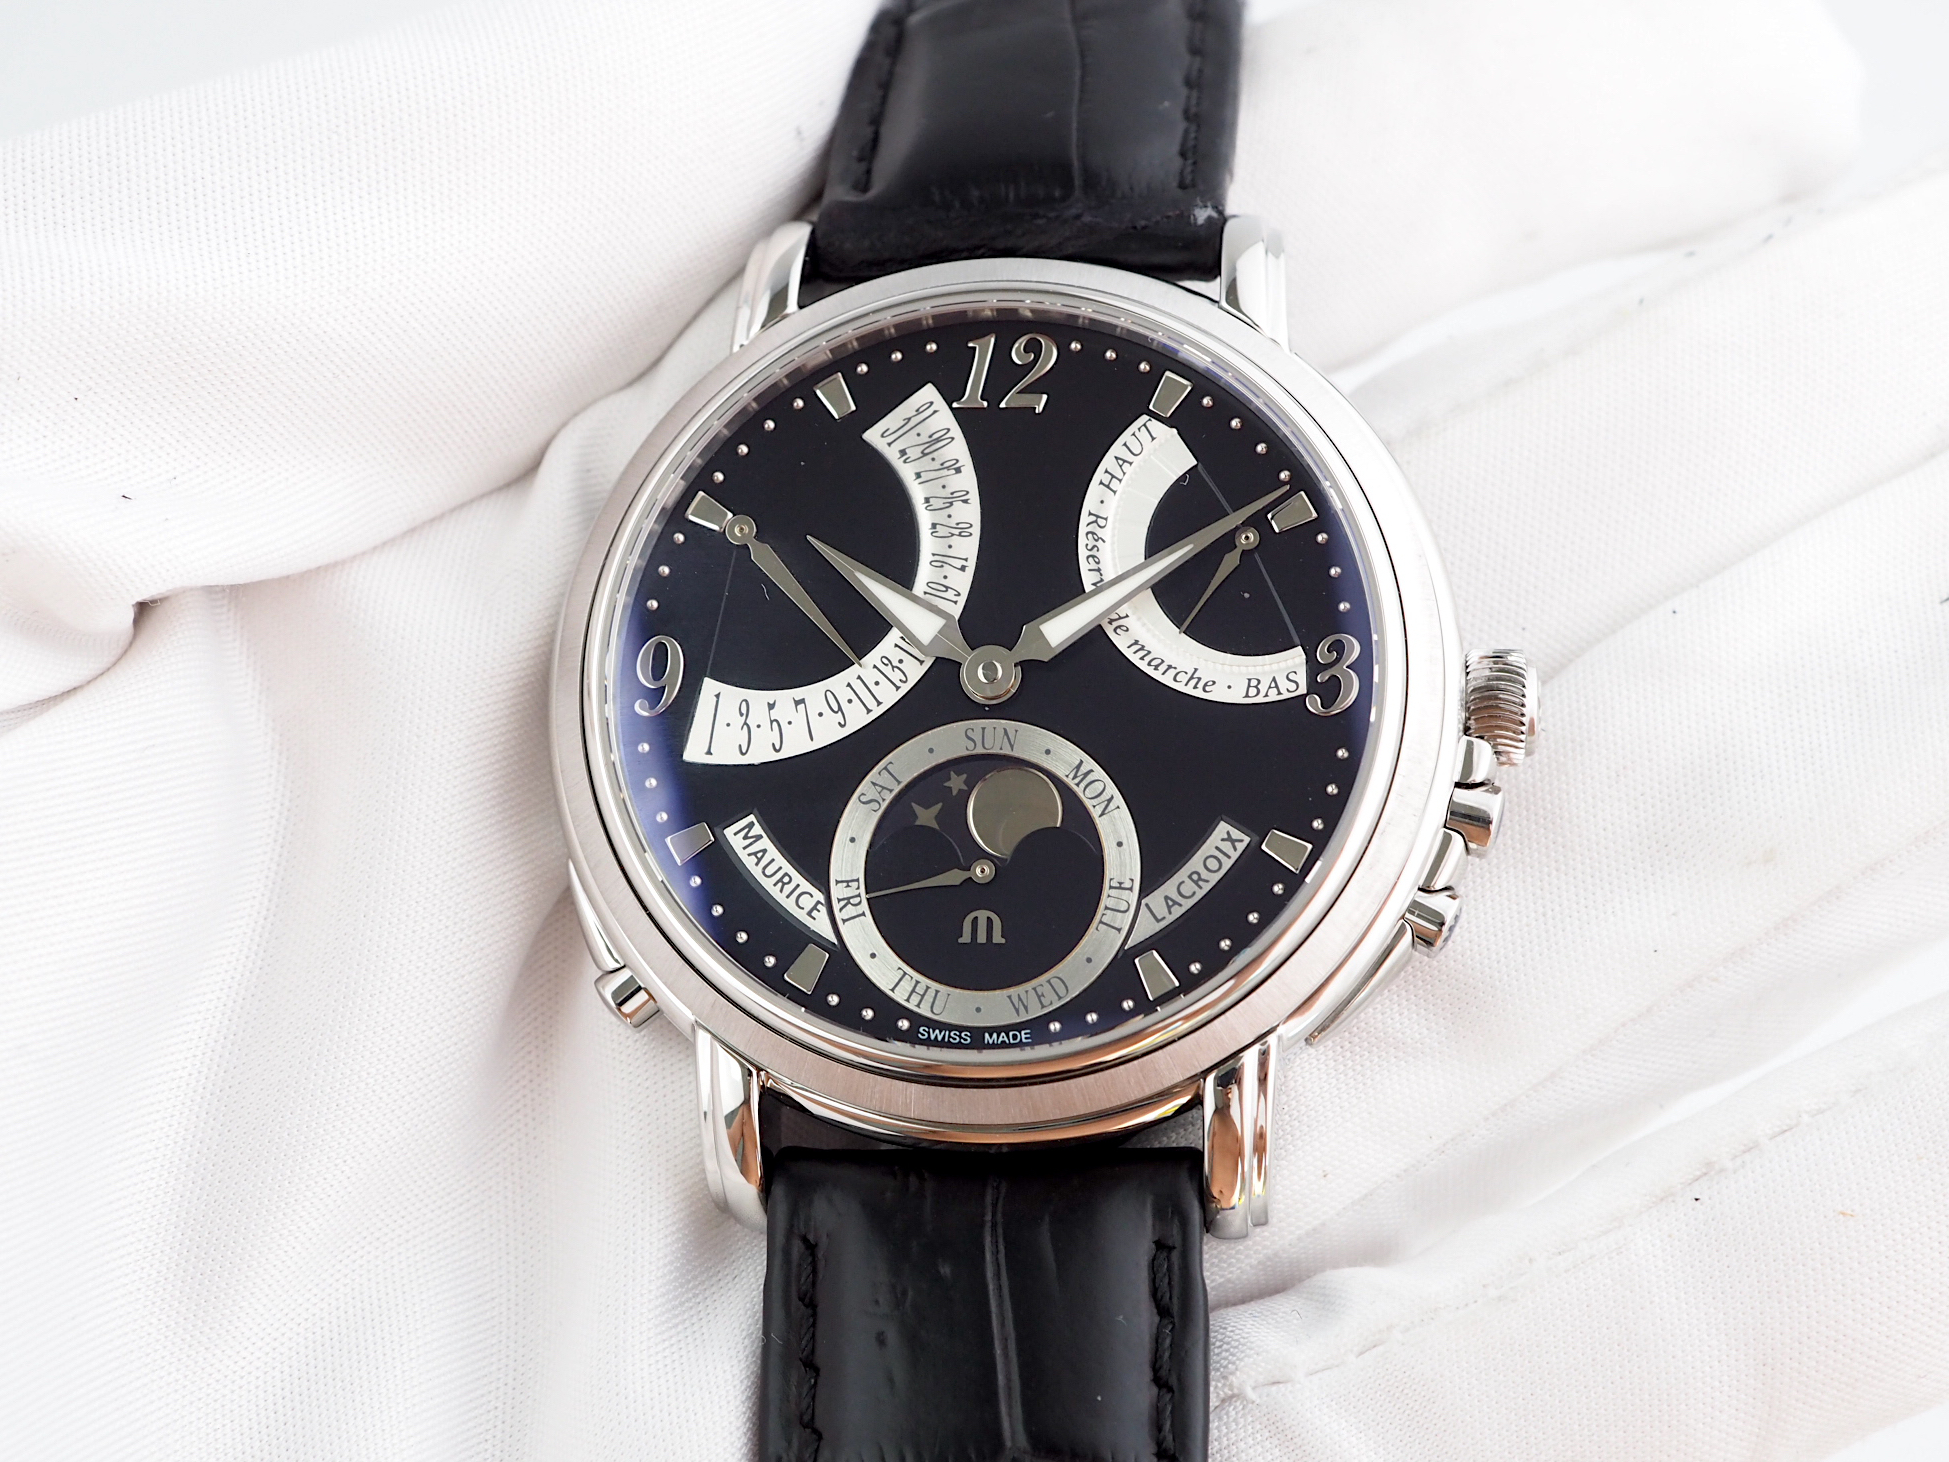 Lacroix Masterpiece Lune Retrograde